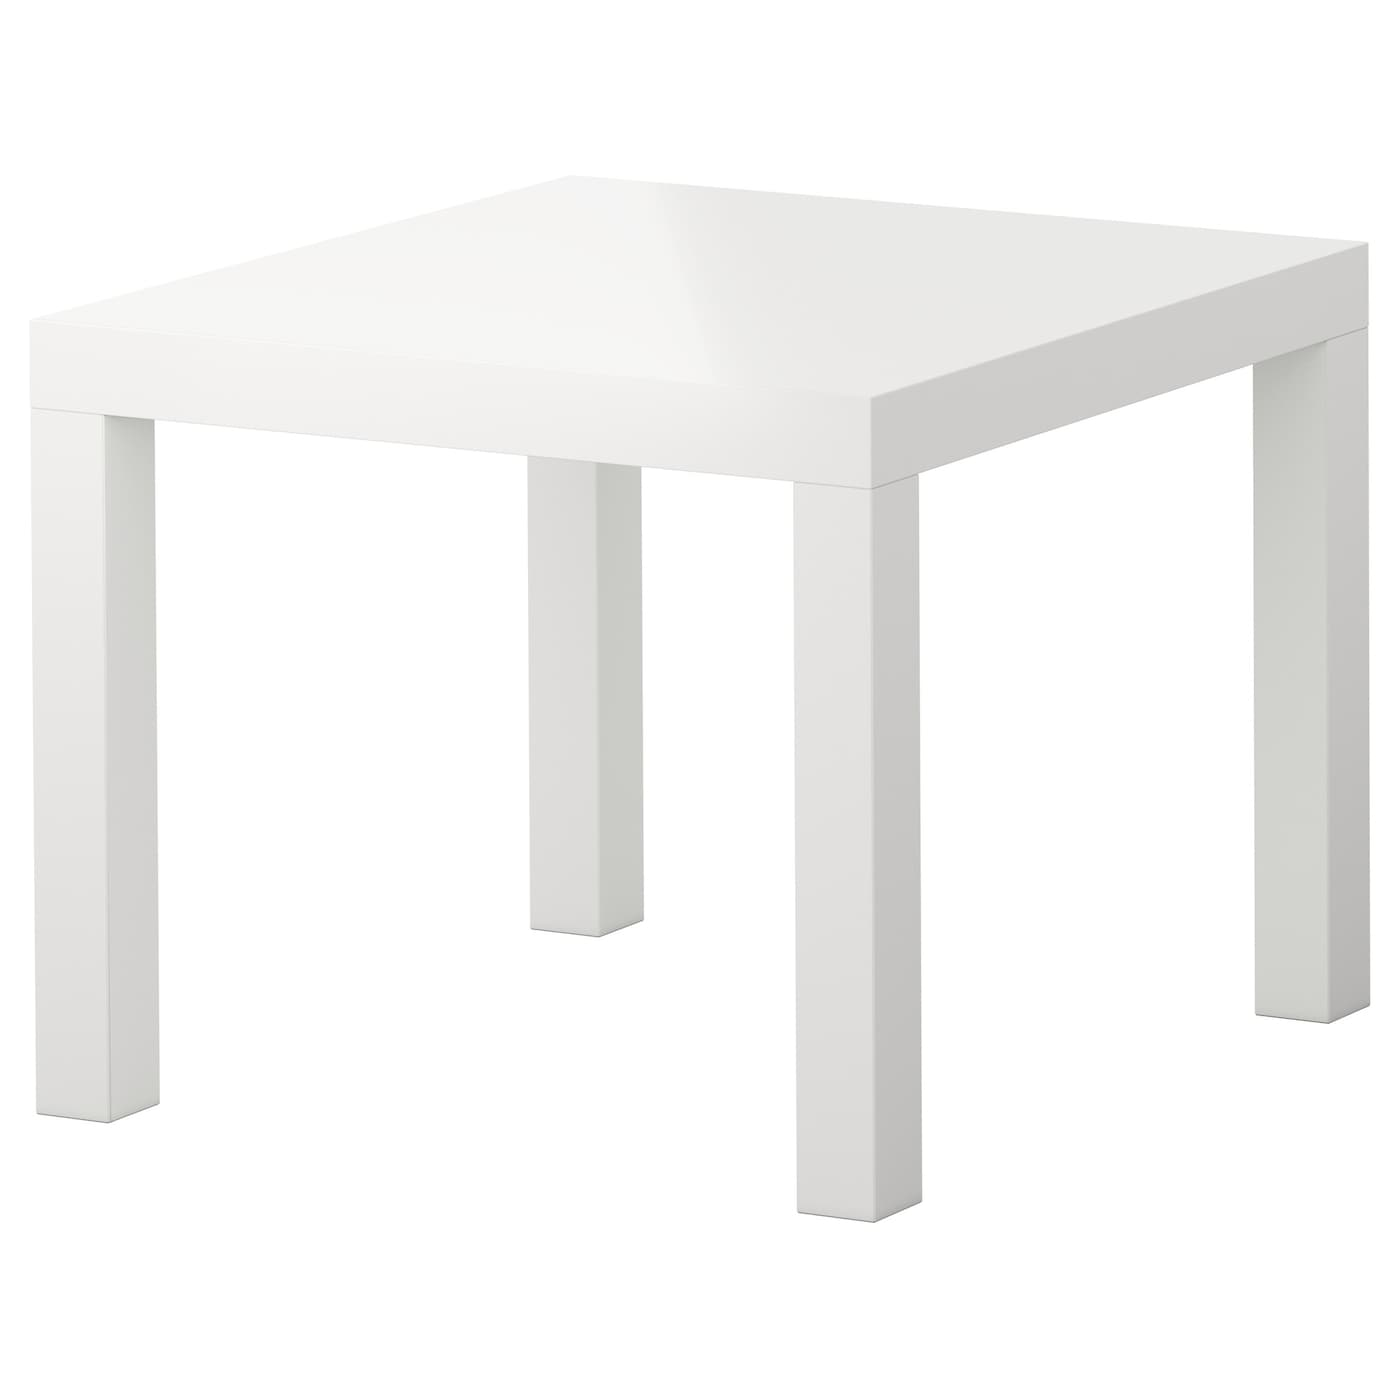 Lack side table high gloss white 55 x 55 cm ikea for Ikea green side table